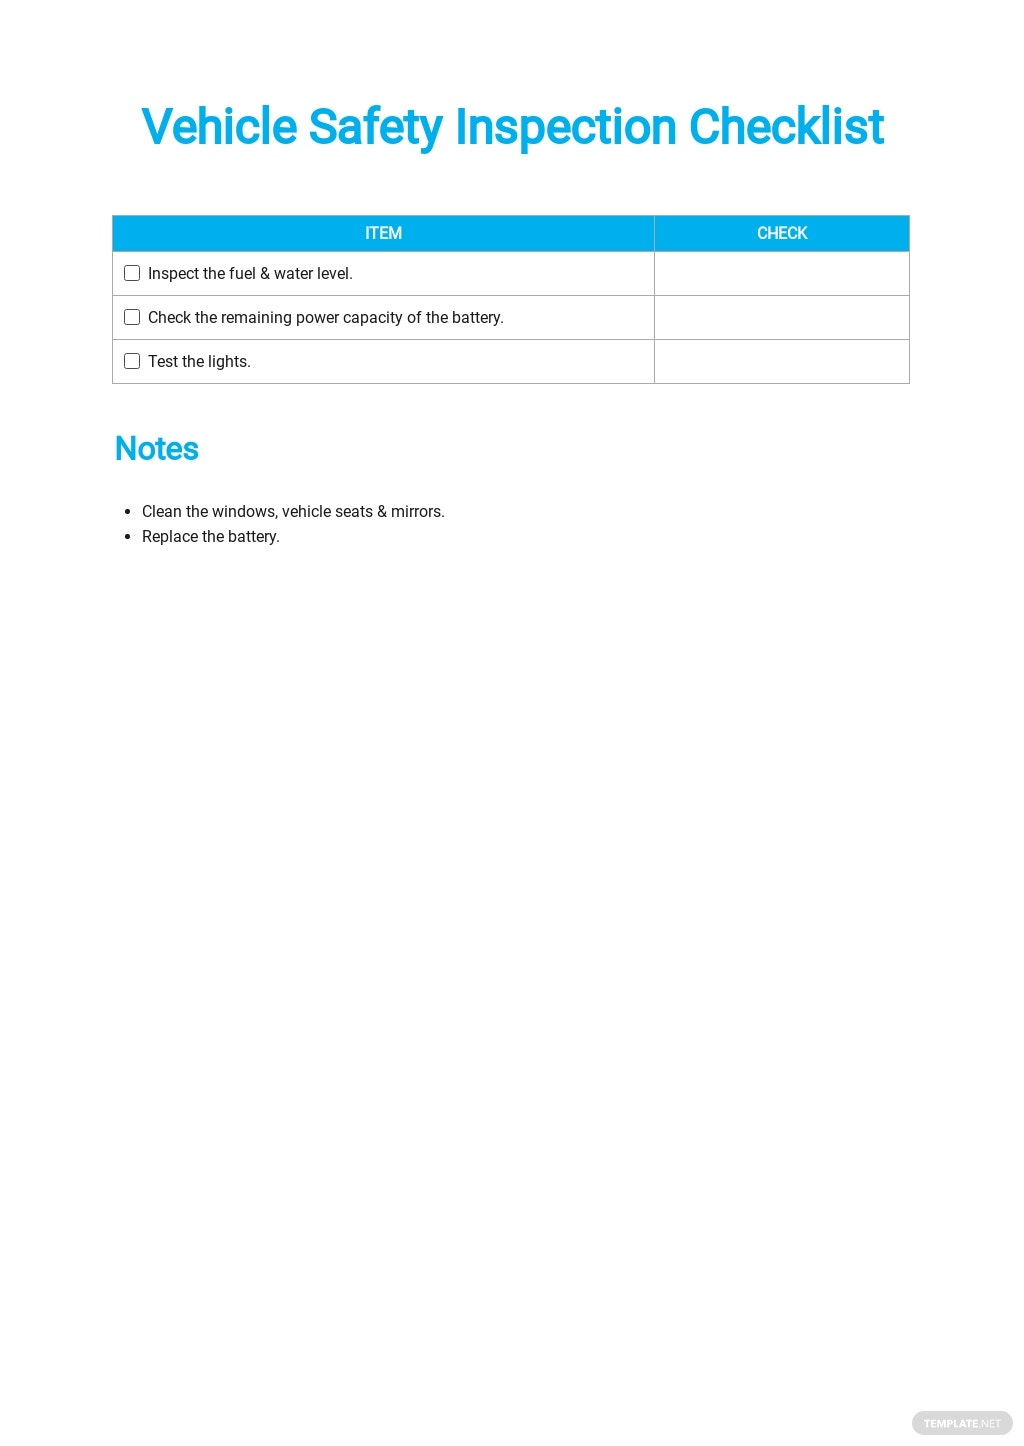 Vehicle Safety Inspection Checklist Template